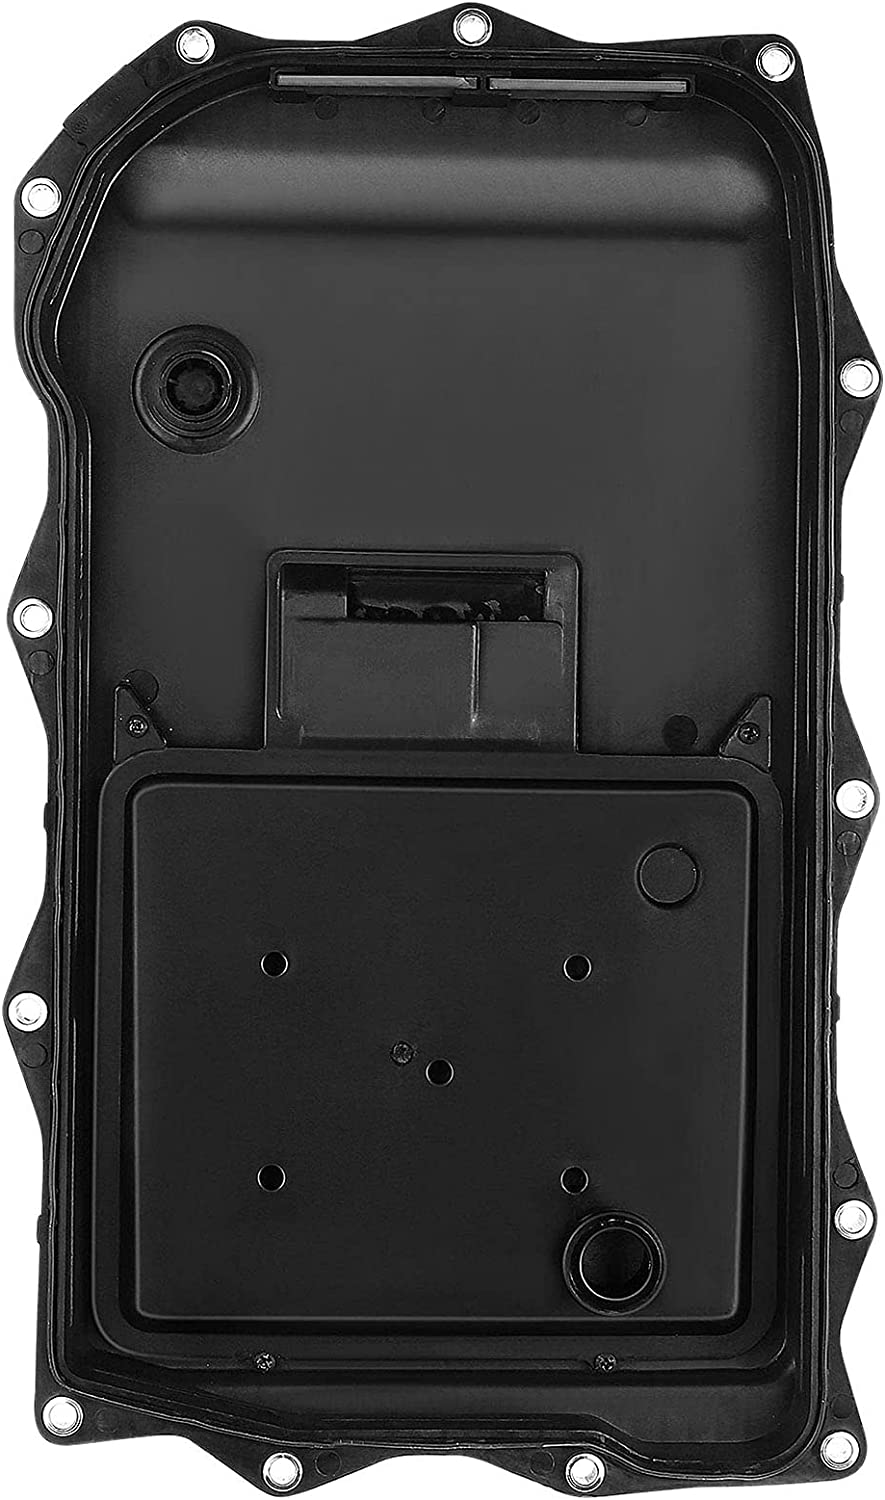 Auto Transmission In stock Oil Pan Replacement Dodge for Charg Challenger Indefinitely